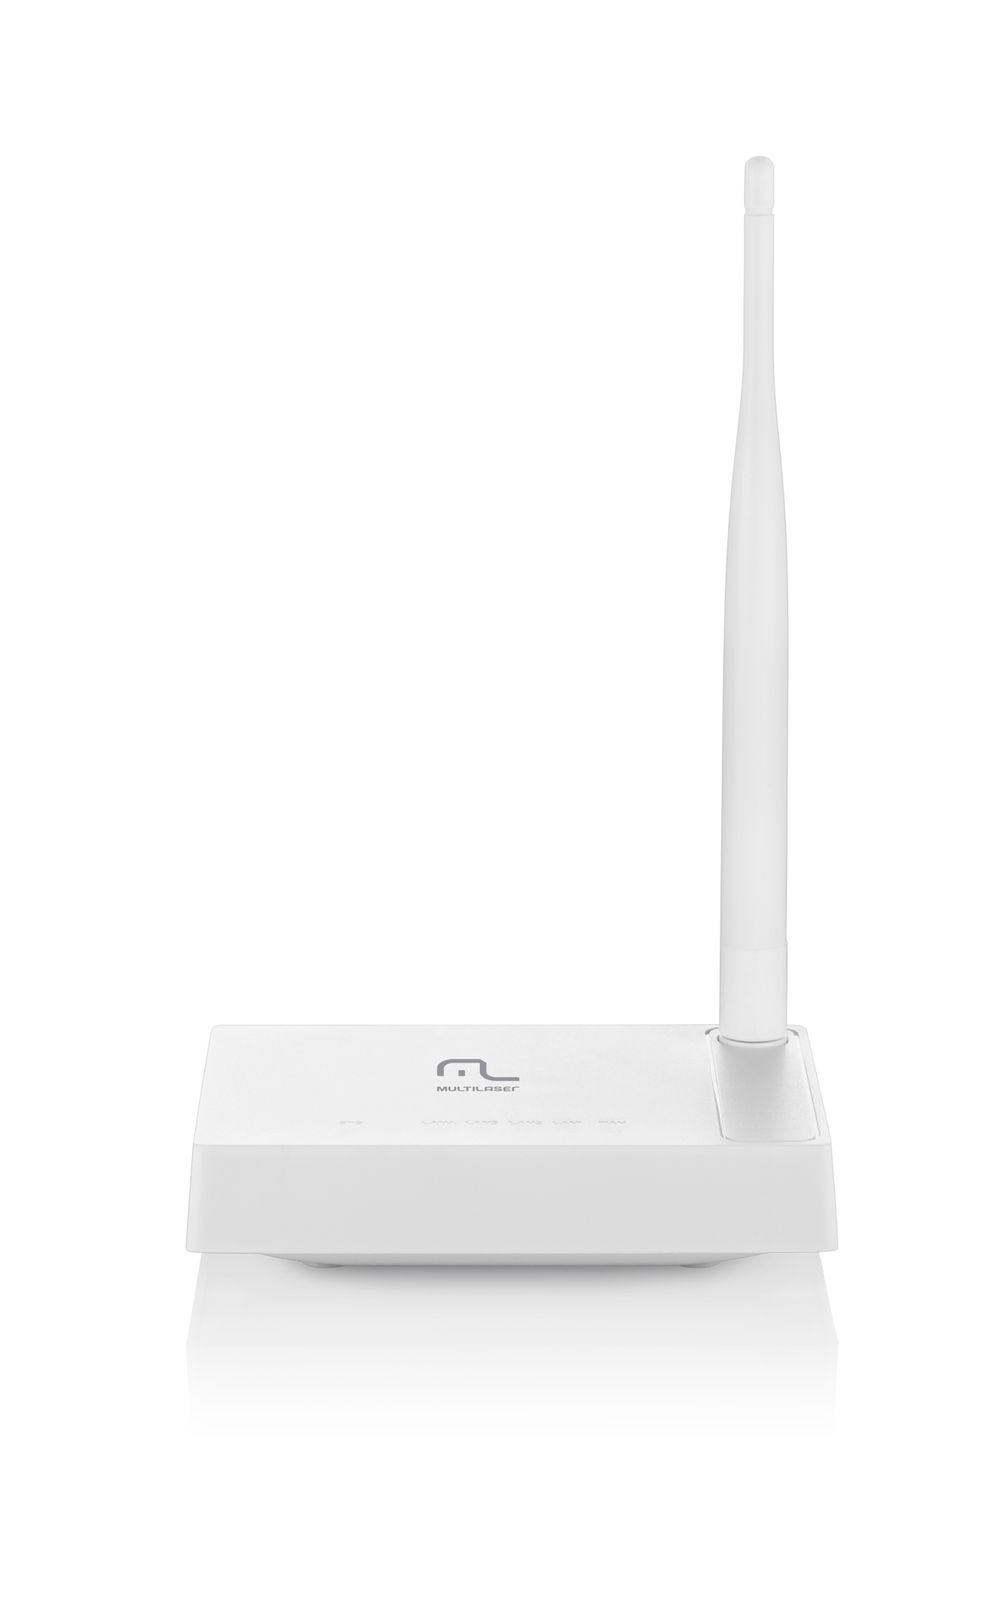 Foto 1 - Roteador Wireless 150Mbps 1 Antena Fixa 4 Portas Lan Multilaser RE057